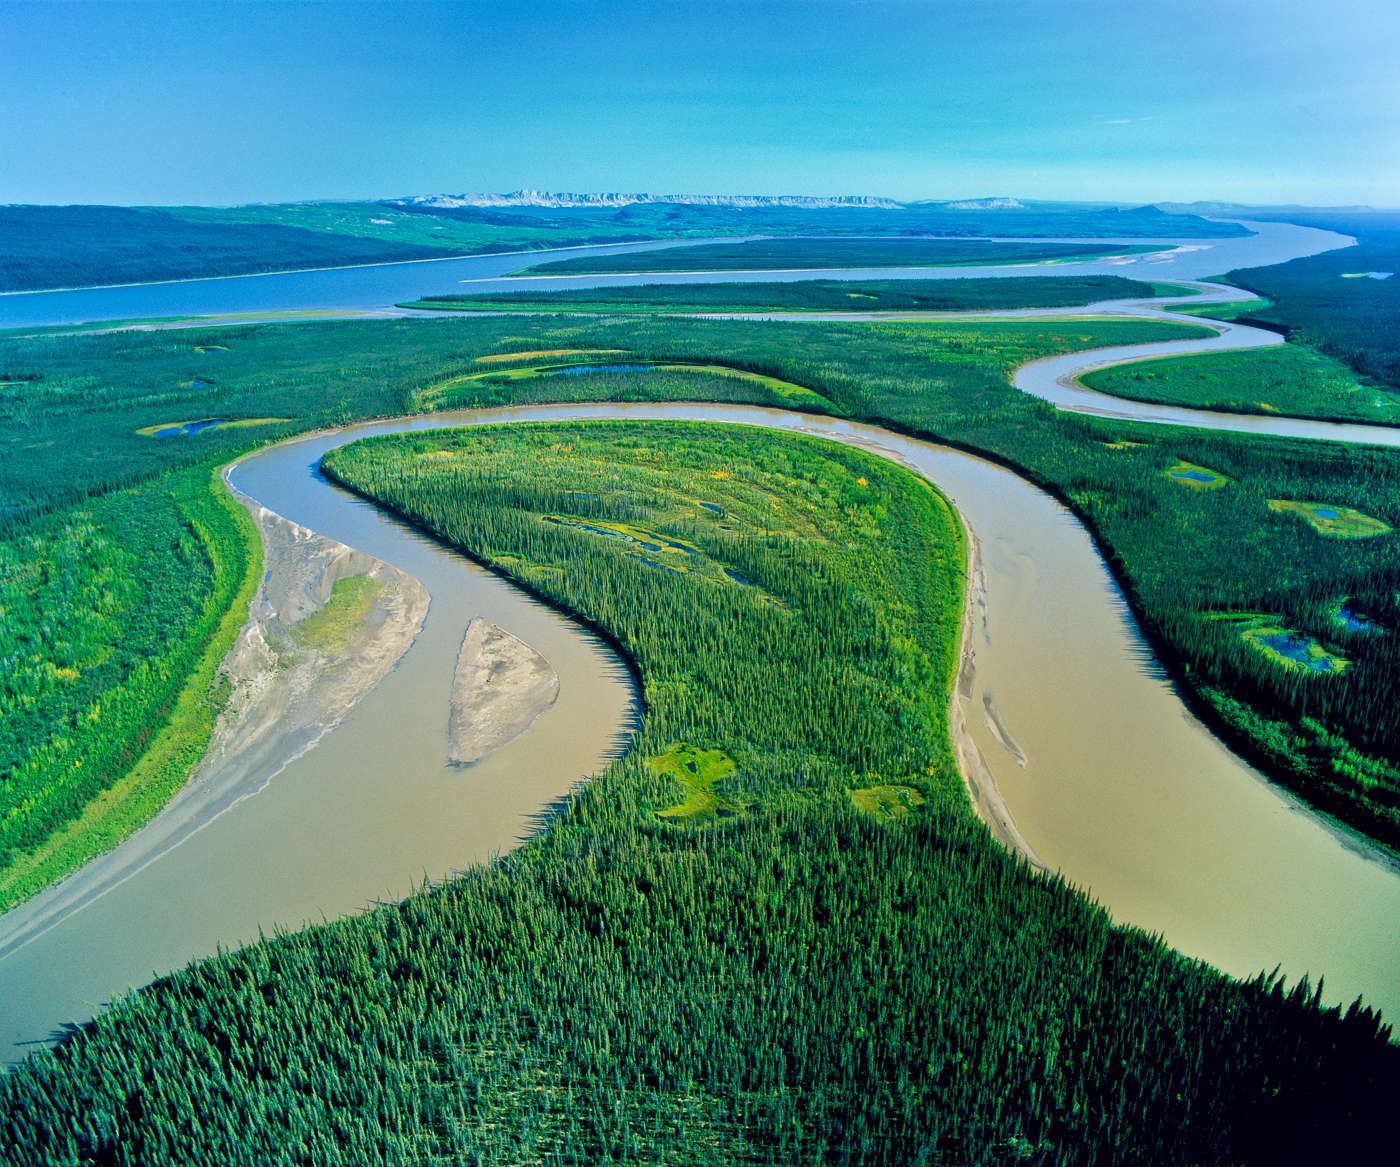 The Caracjou River winds back and forth creating this oxbow of wetlands as it joins the Mackenzie flowing north to the Beaufort Sea. This region, almost entirely pristine, and the third largest watershed basin in the world, would be directly impacted by the proposed Mackenzie Valley National Gas Pipeline to fuel the energy needs of the Alberta Tar Sands mega-project.